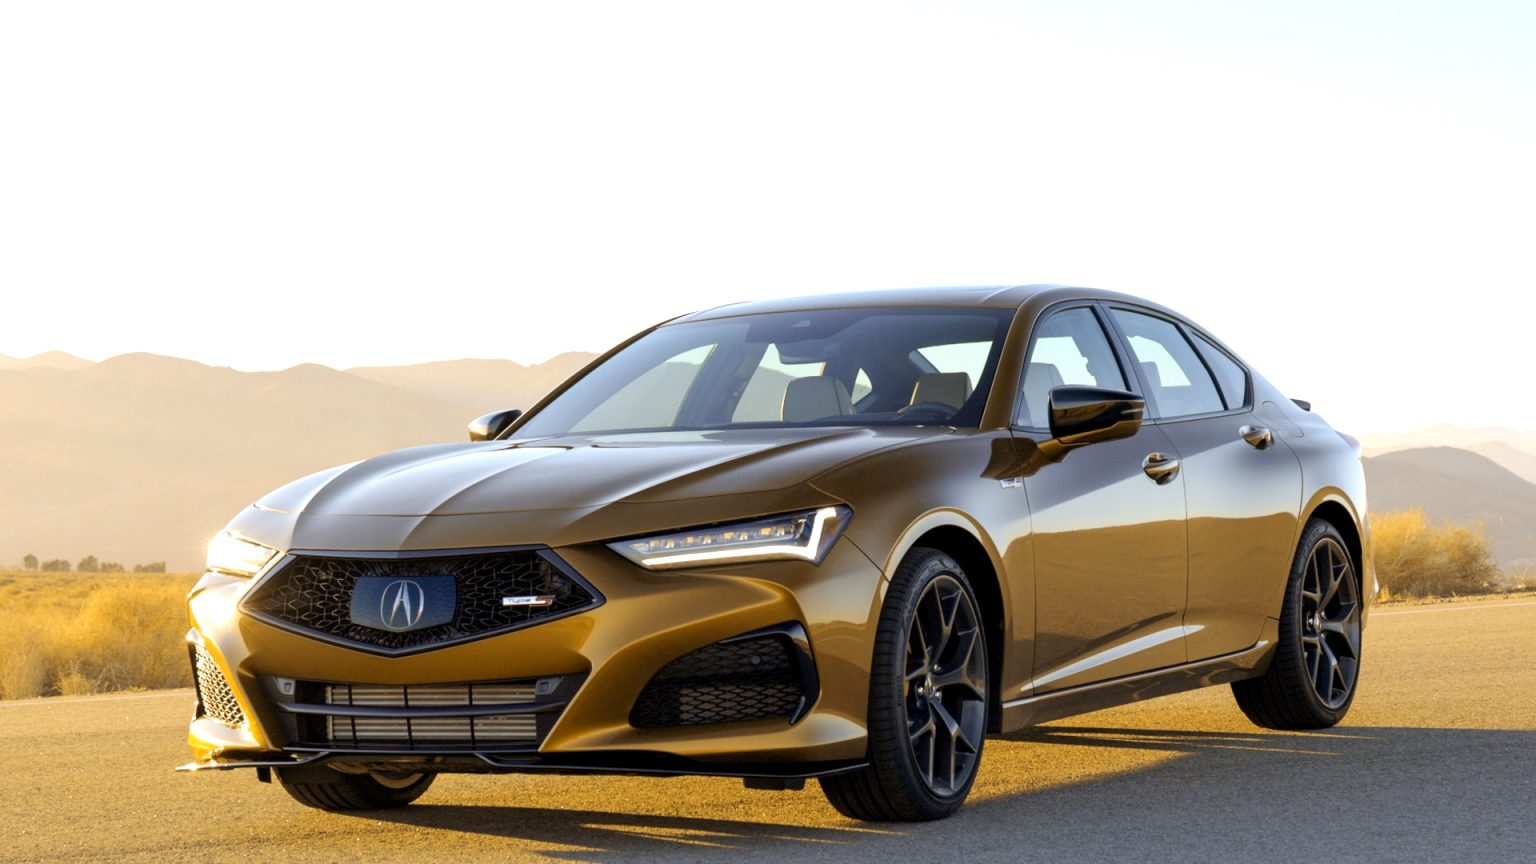 acura deals june 2021 Price and Release date